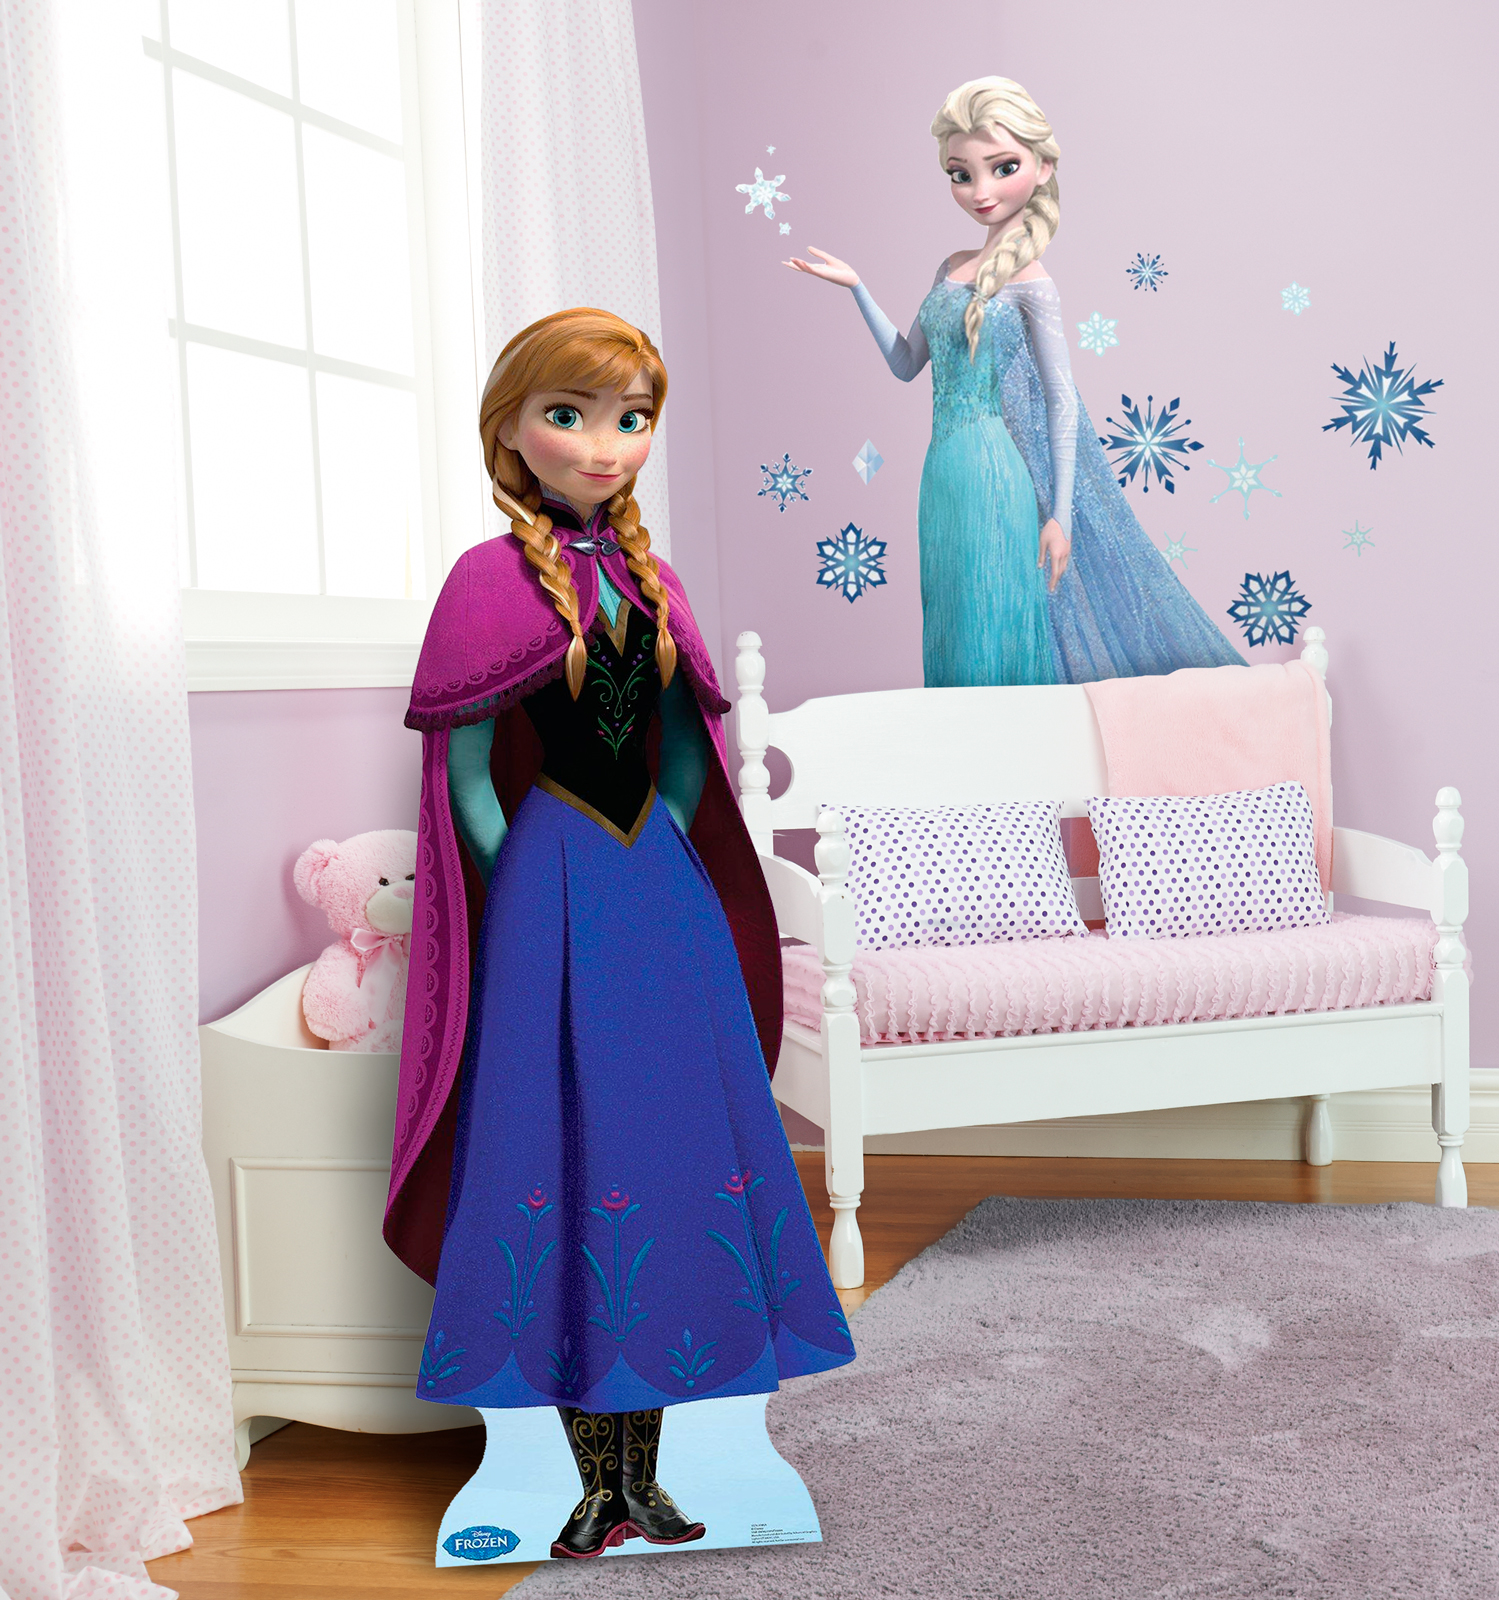 Disney frozen wall decals and standup kit birthdayexpress amipublicfo Choice Image